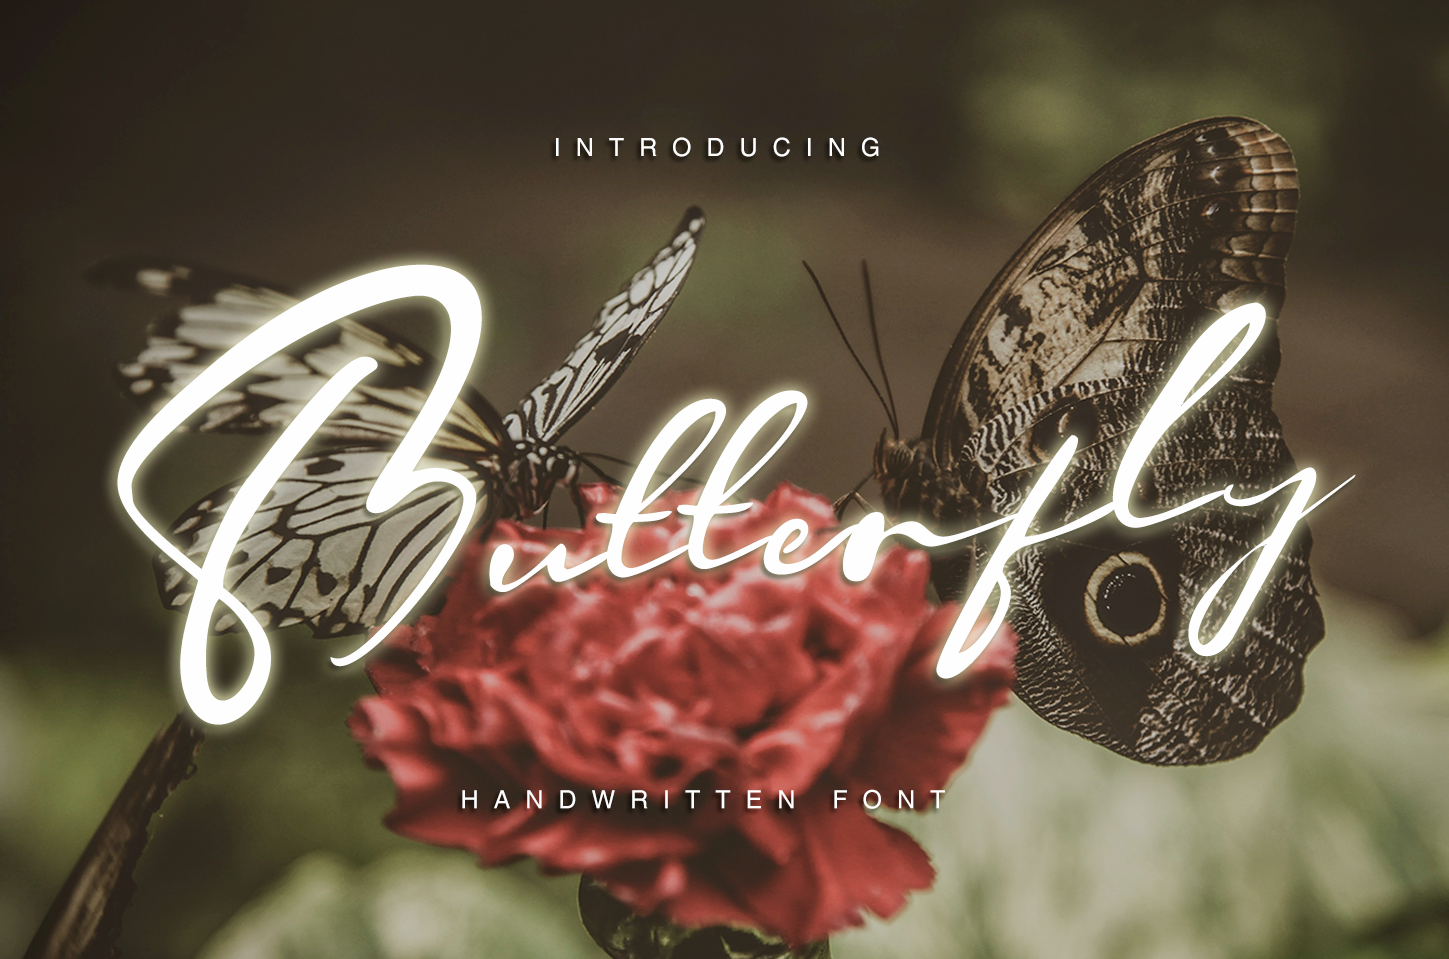 Butterfly - Hadwritten font example image 1